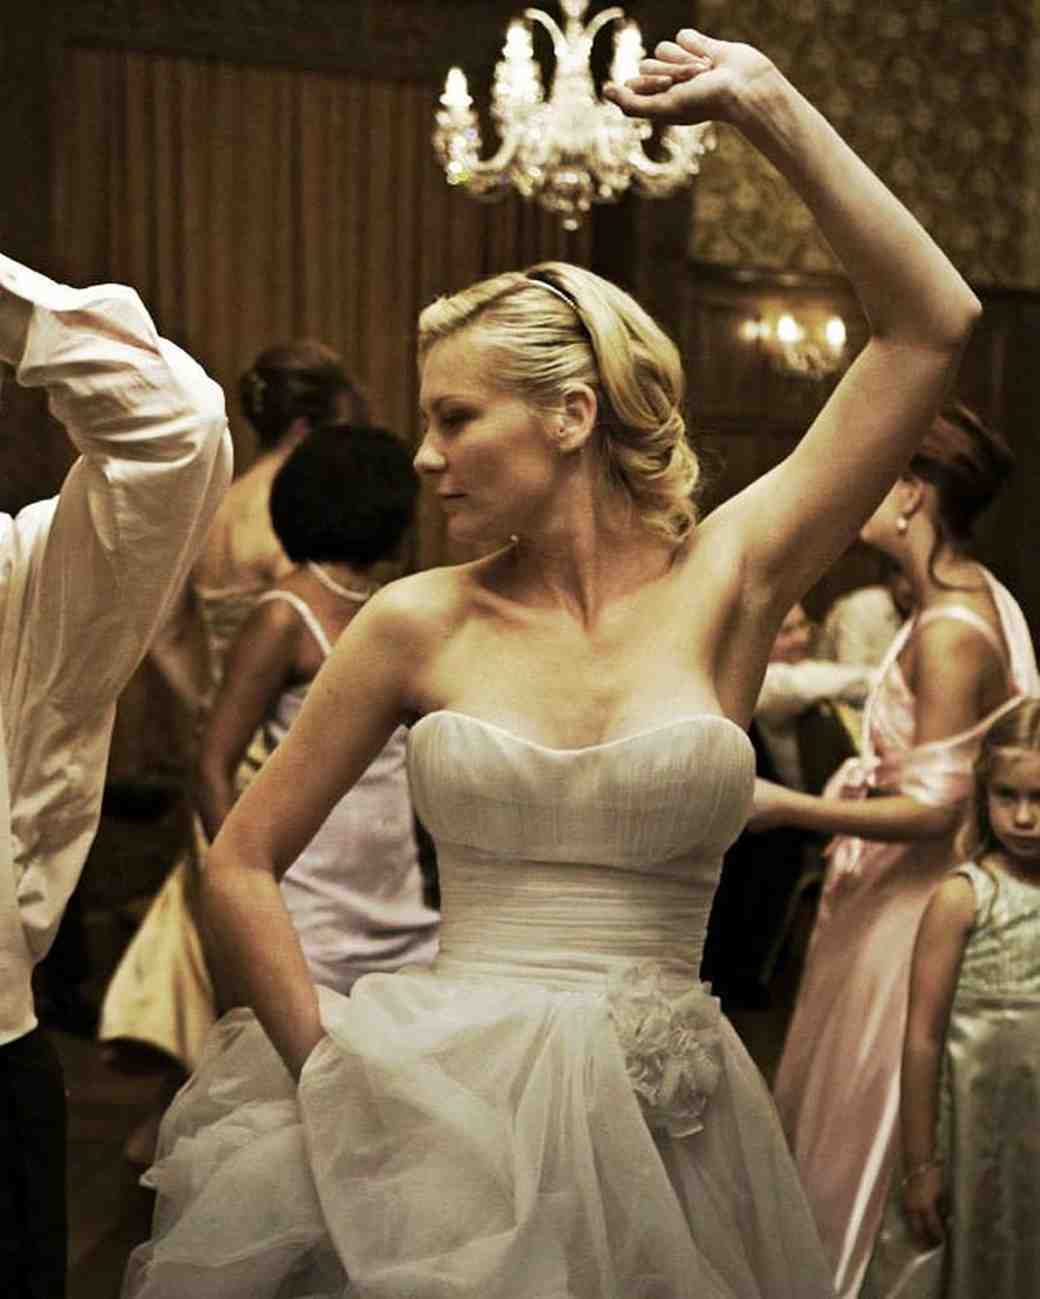 movie-wedding-dresses-melancholia-kirsten-dunst-0316.jpg